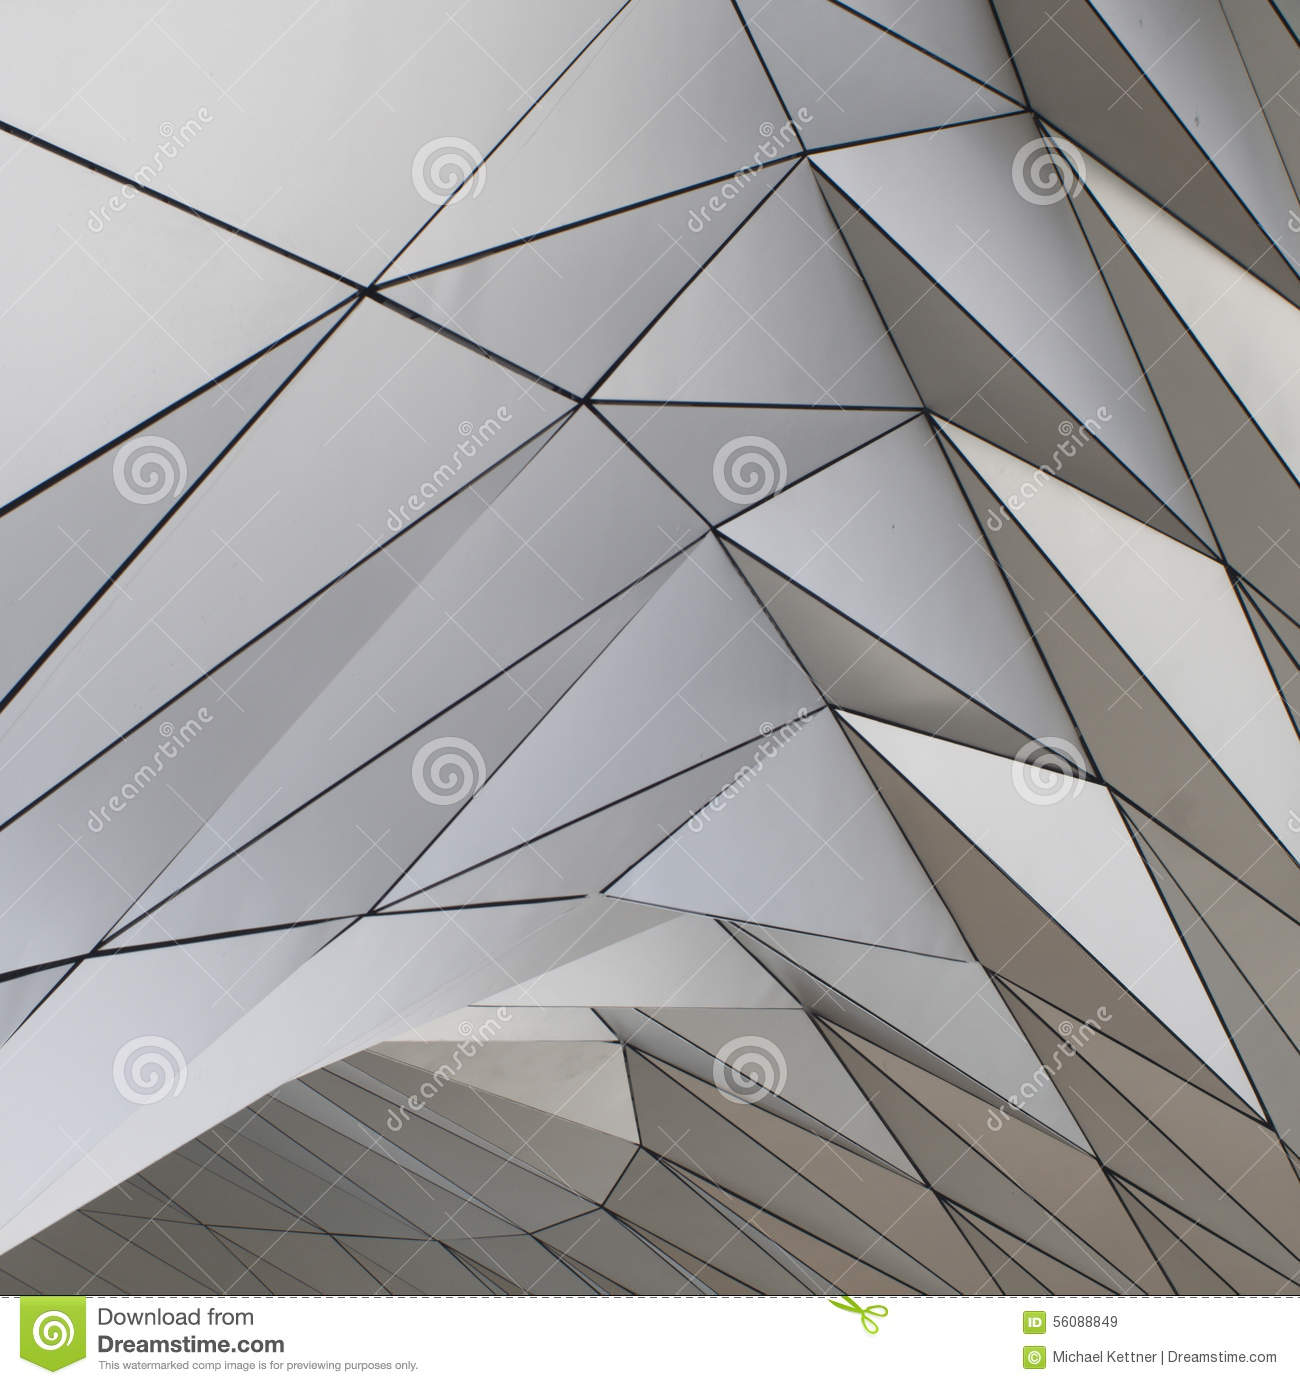 modern facade and geometric form stock image - image of modern